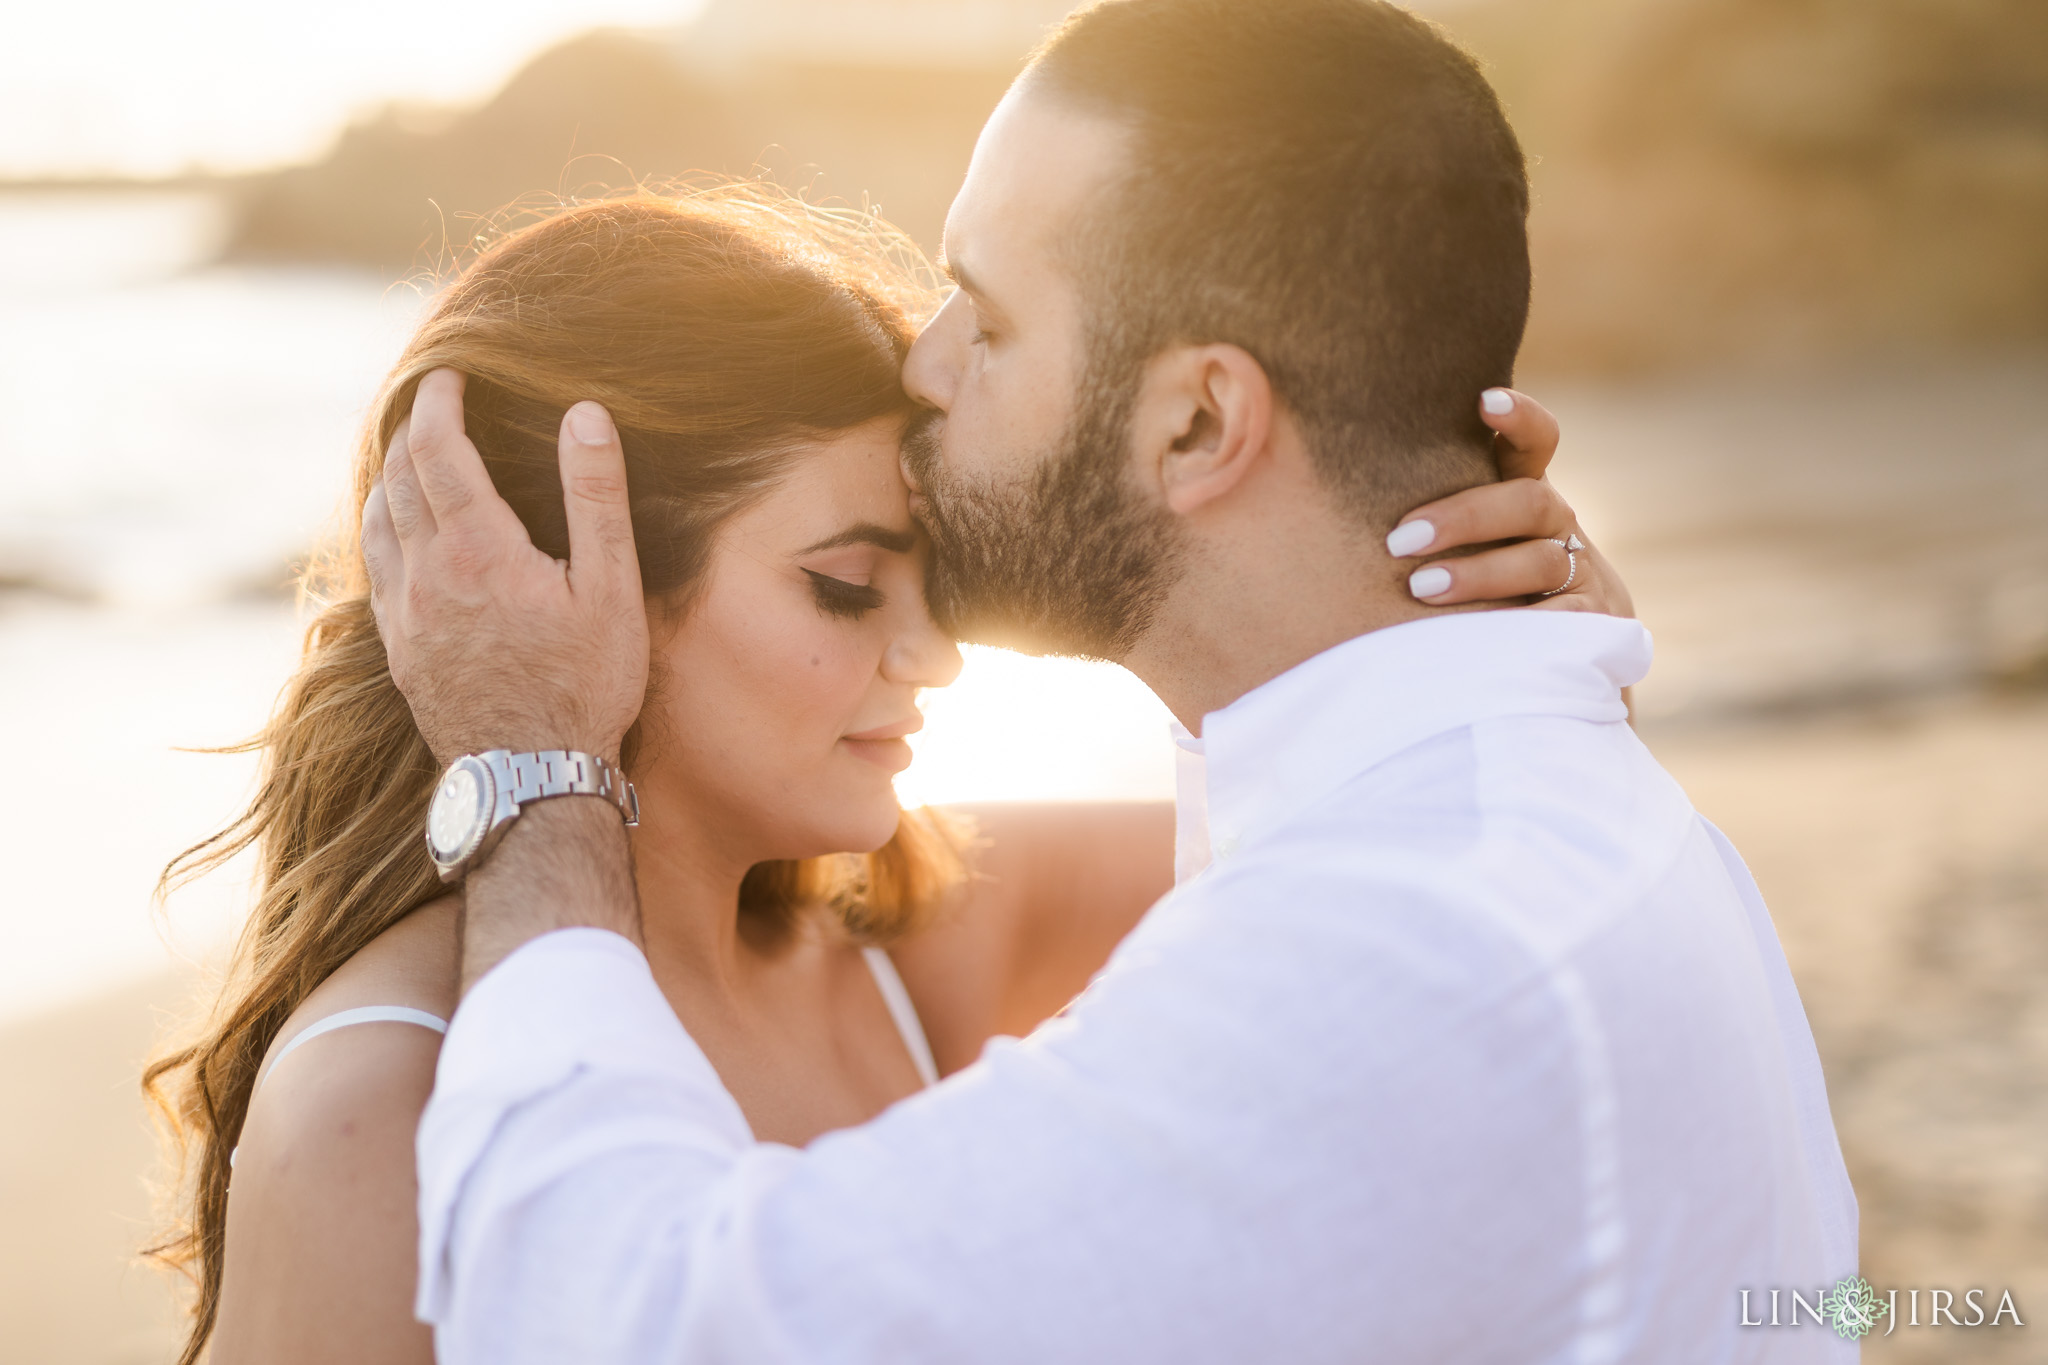 19 Heisler Beach Orange County Engagement Photography